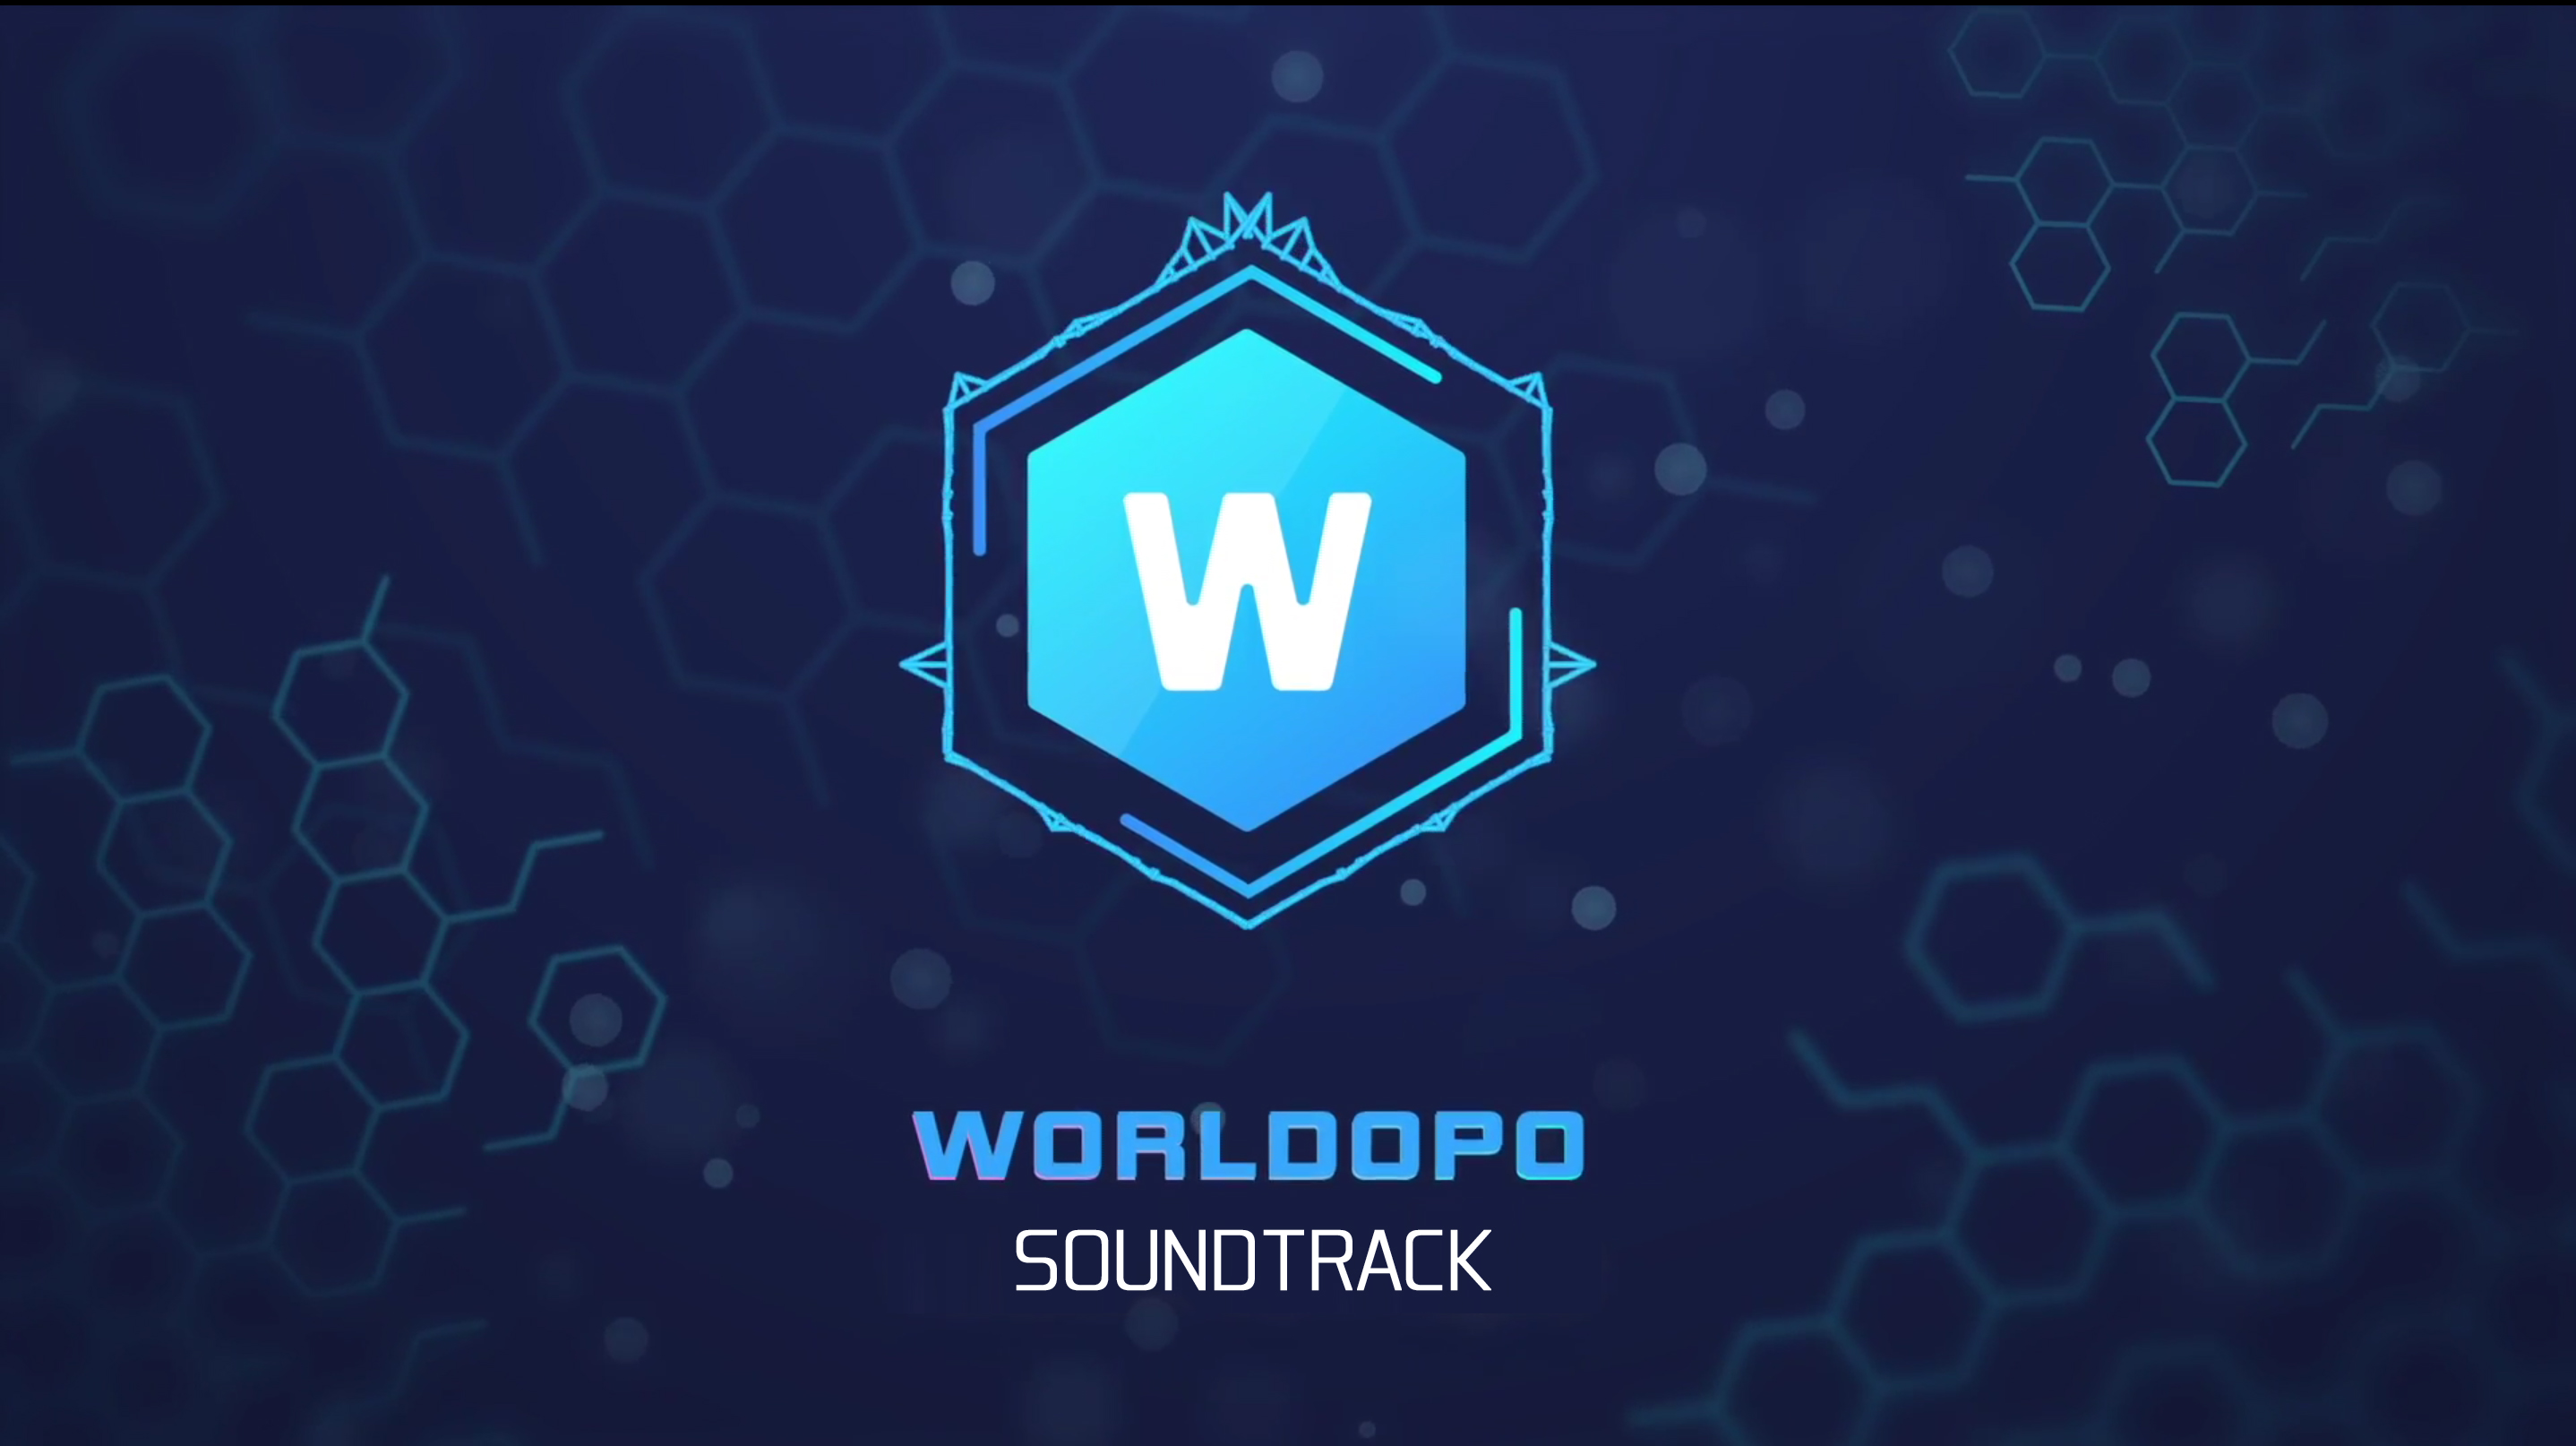 Worldopo Music & SFX